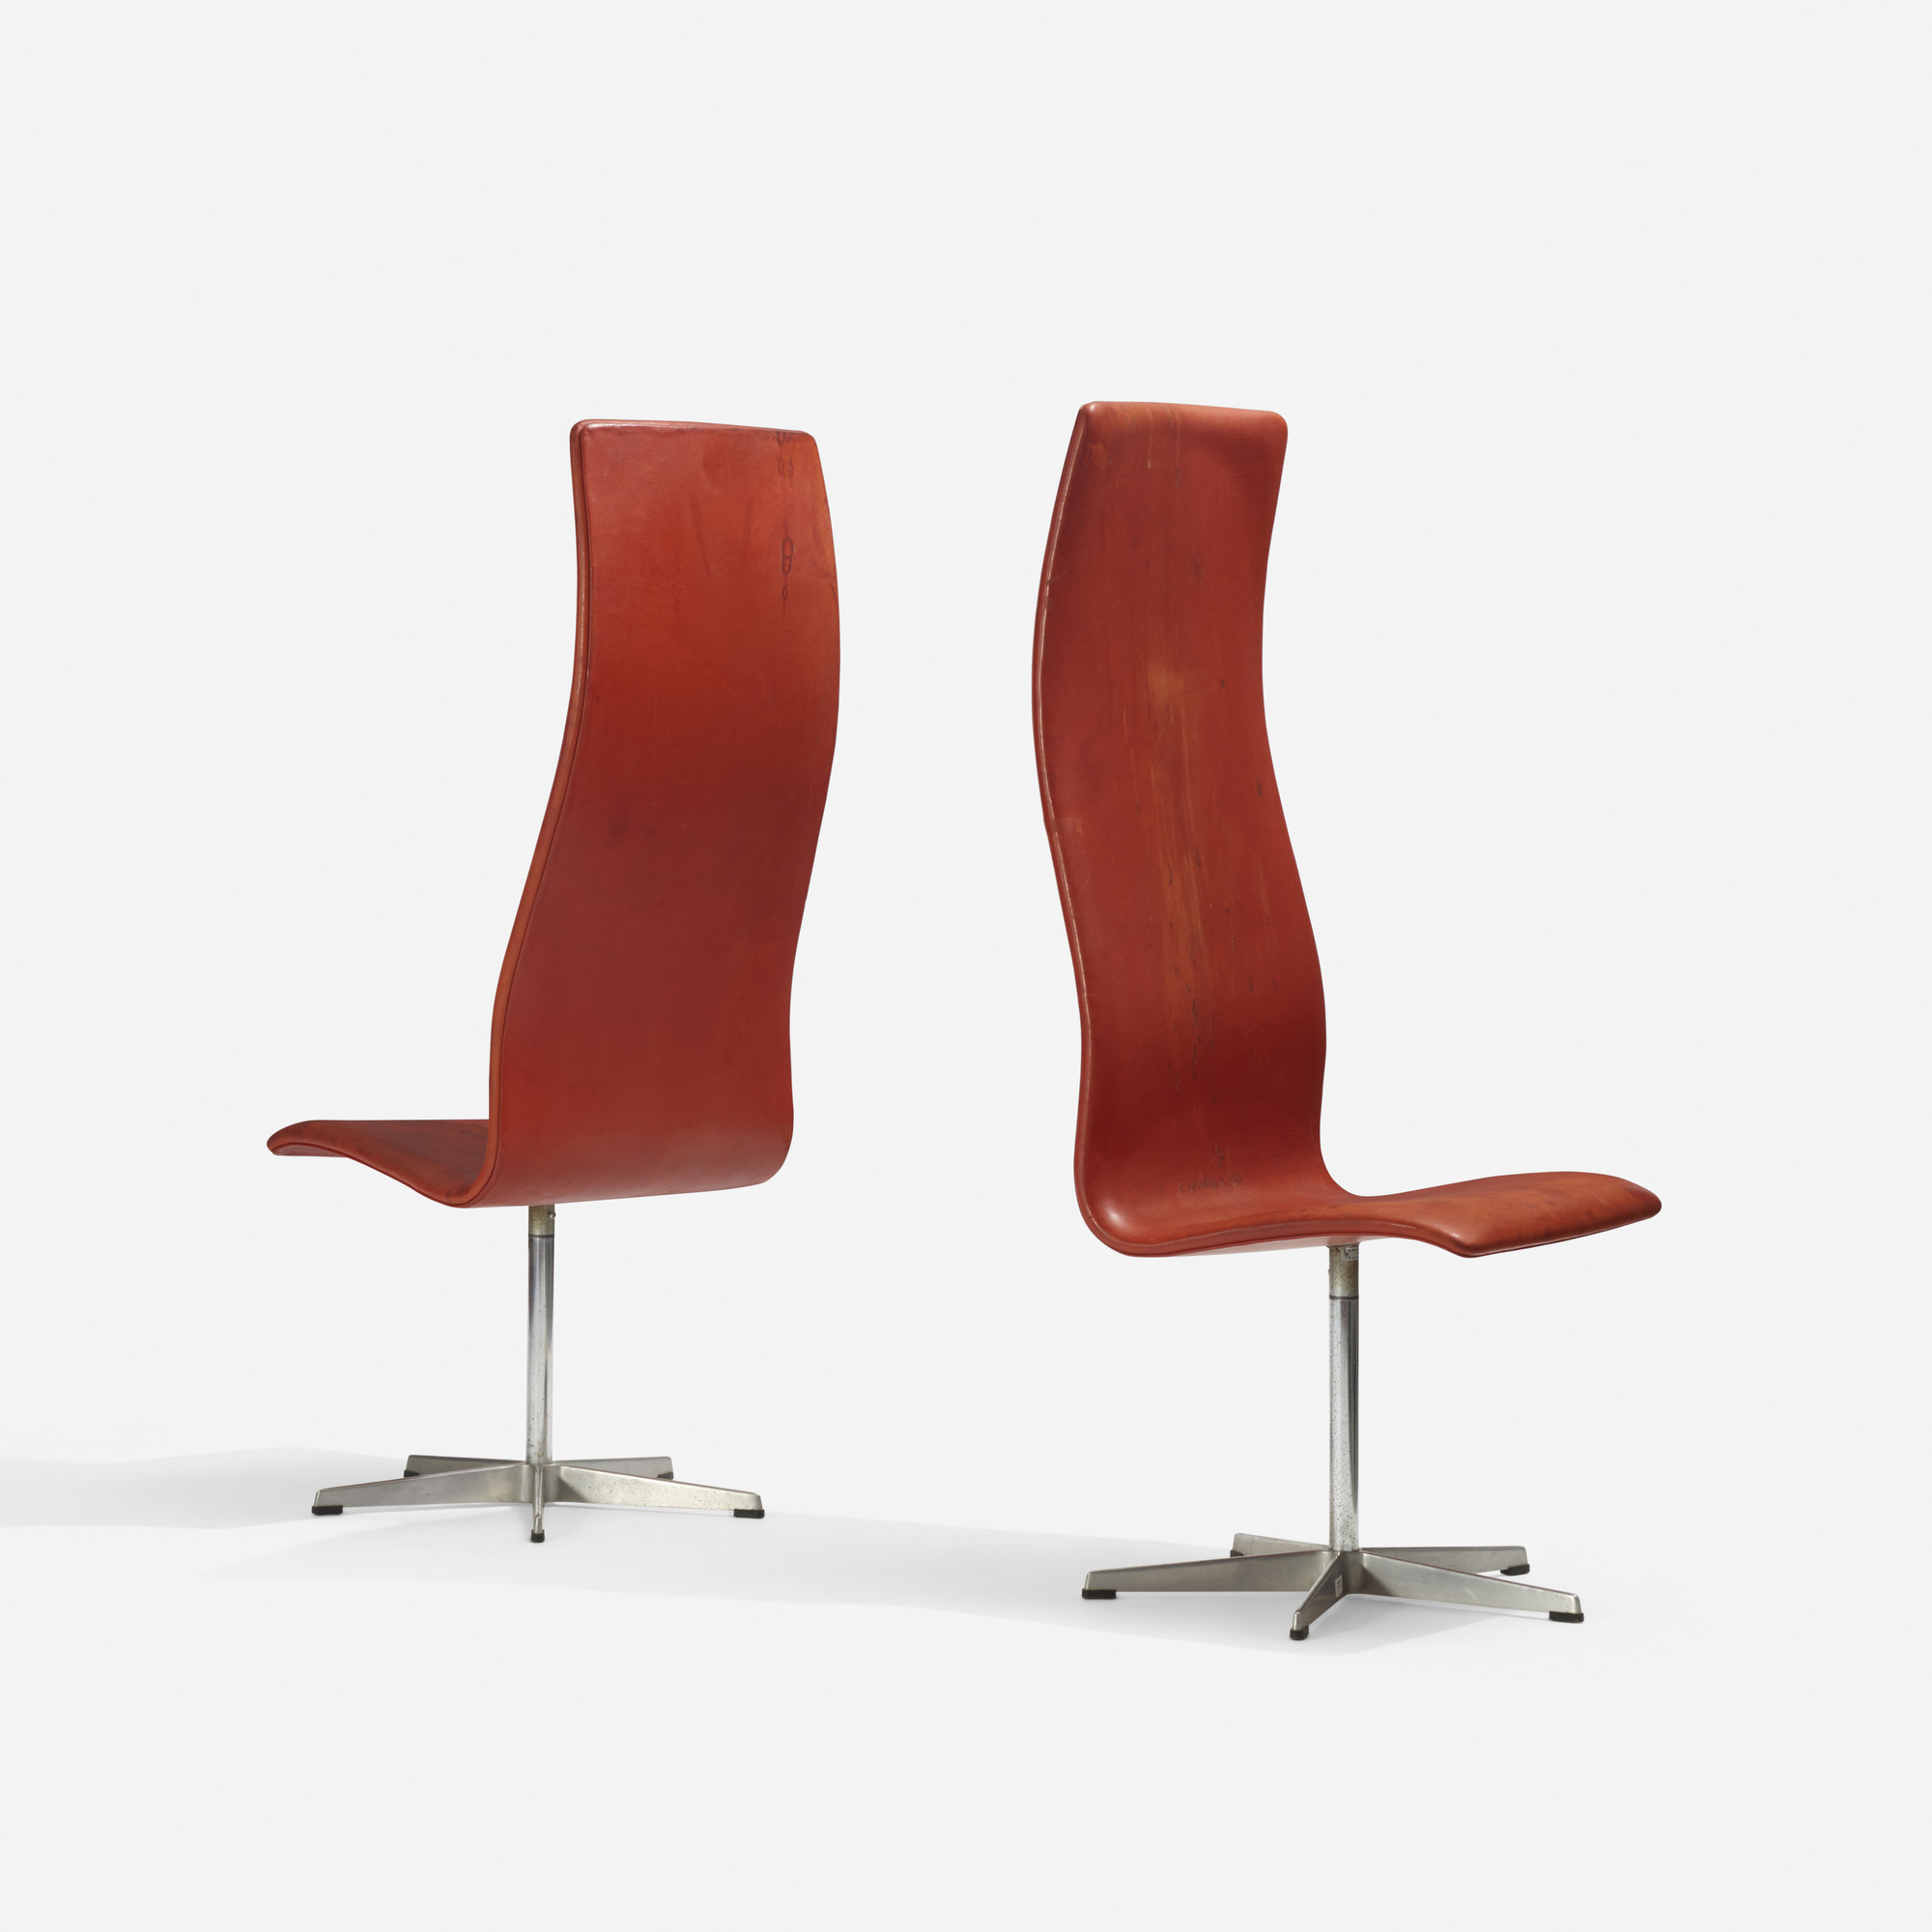 111: Arne Jacobsen / Oxford chairs model 7403, pair (1 of 3)